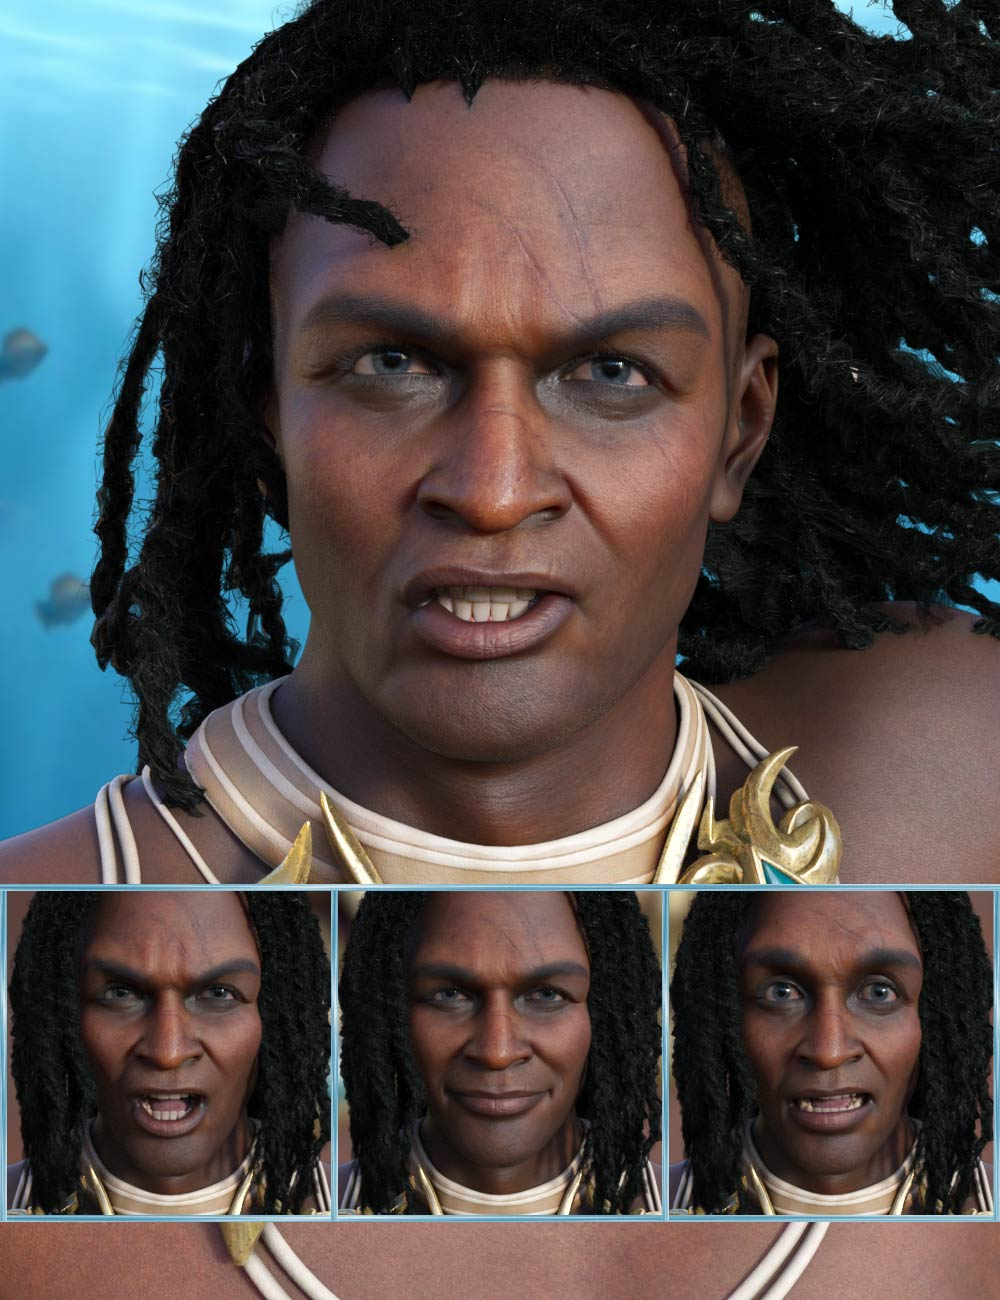 Sea King - Expressions for Genesis 8.1 Male and Zale 8.1 by: JWolf, 3D Models by Daz 3D